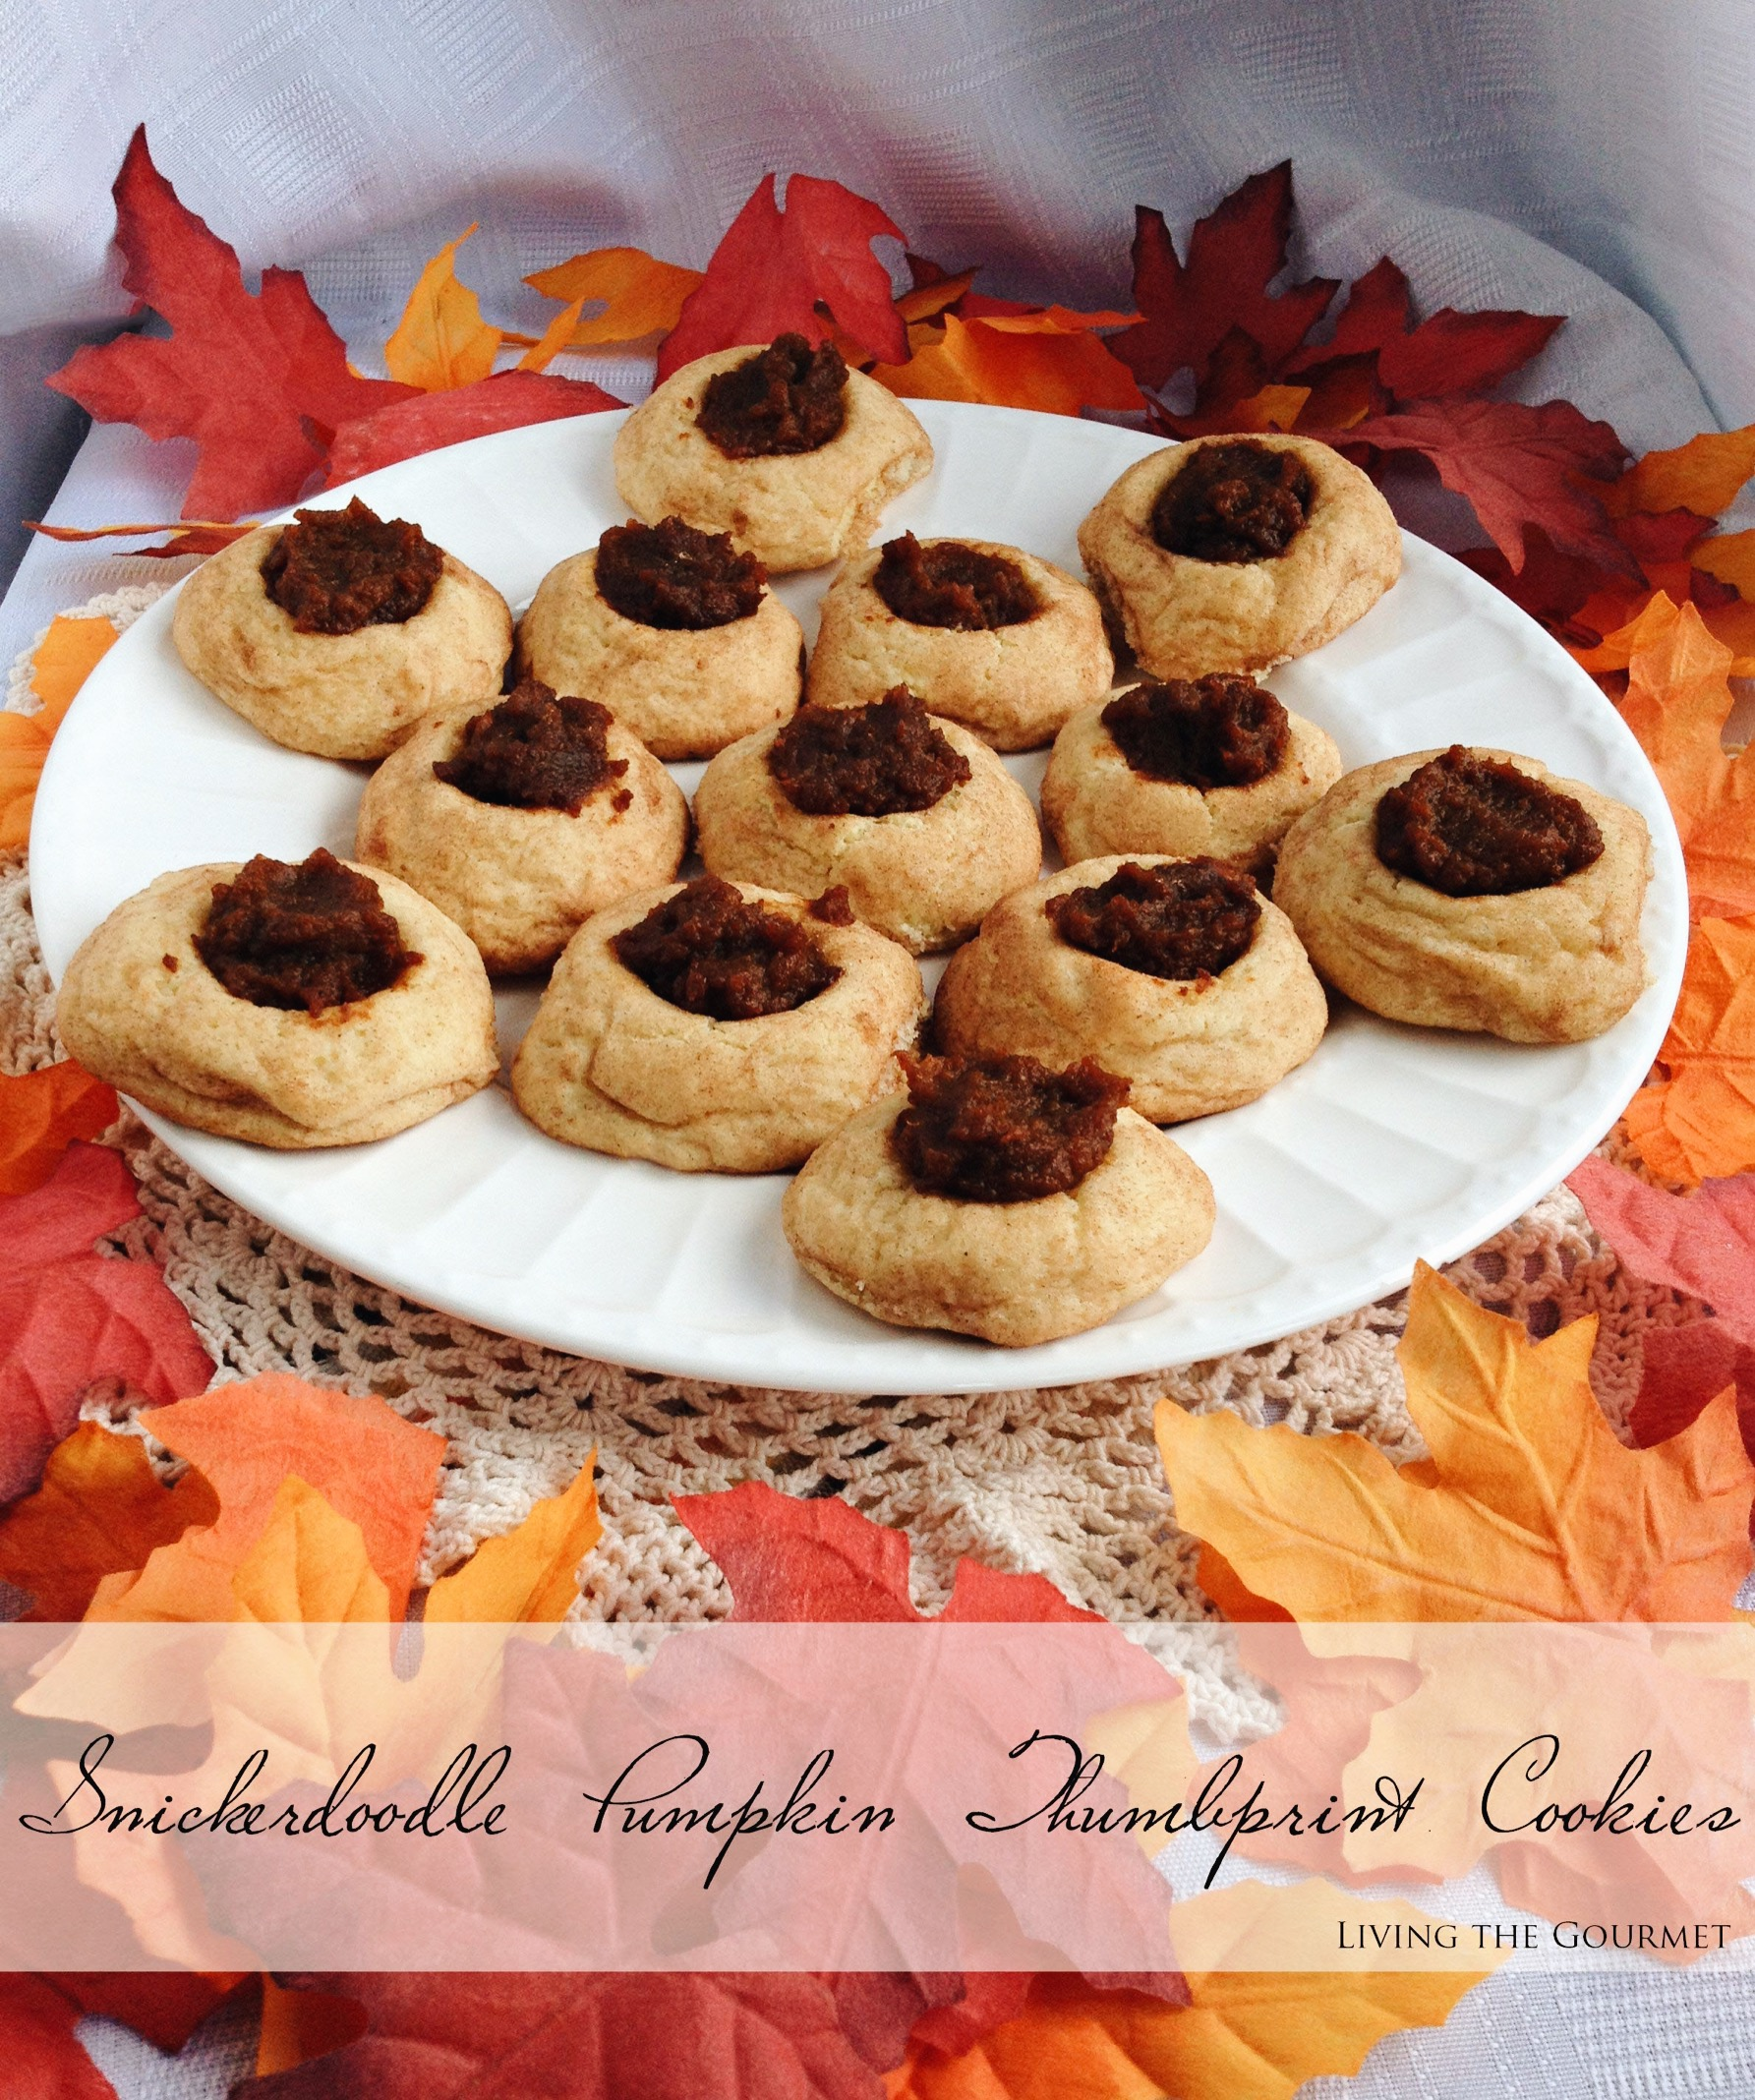 Living the Gourmet: Snickerdoodle Pumpkin Thumbprint Cookies